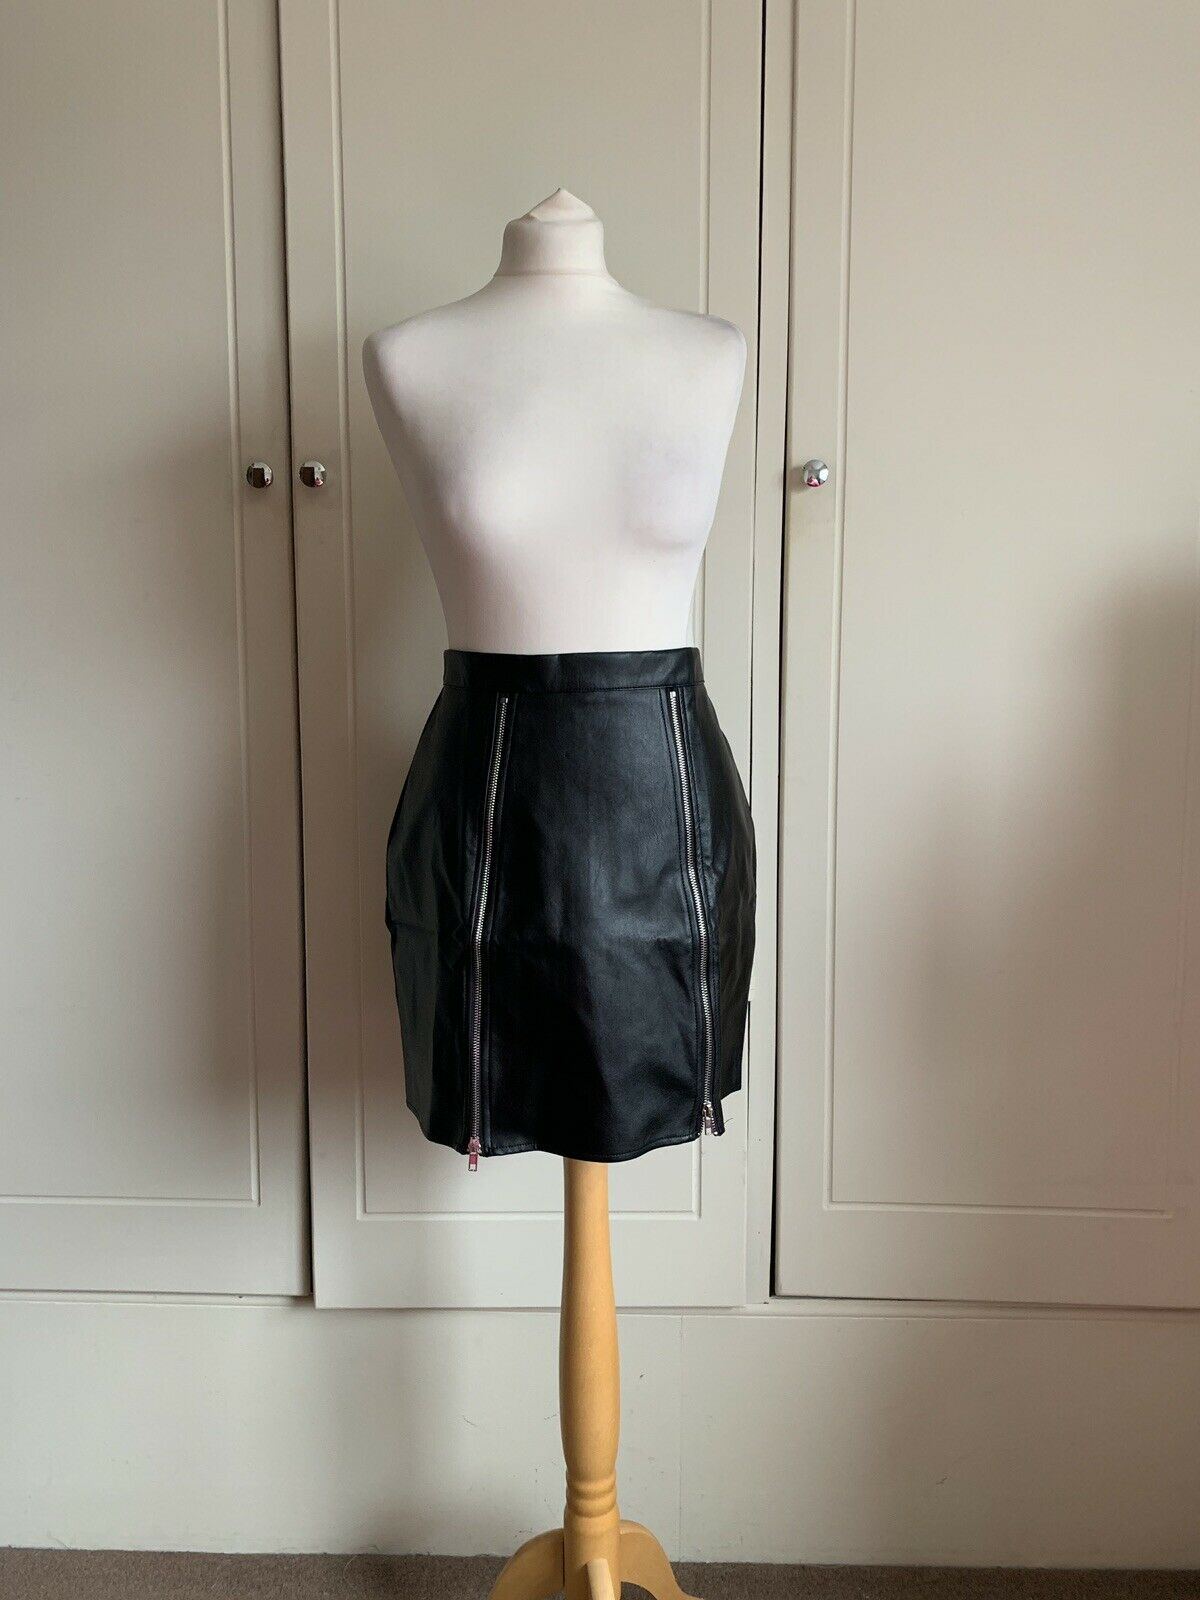 G654 in the style x Charlotte Crosby PU leather skirt, new with tags, size 12